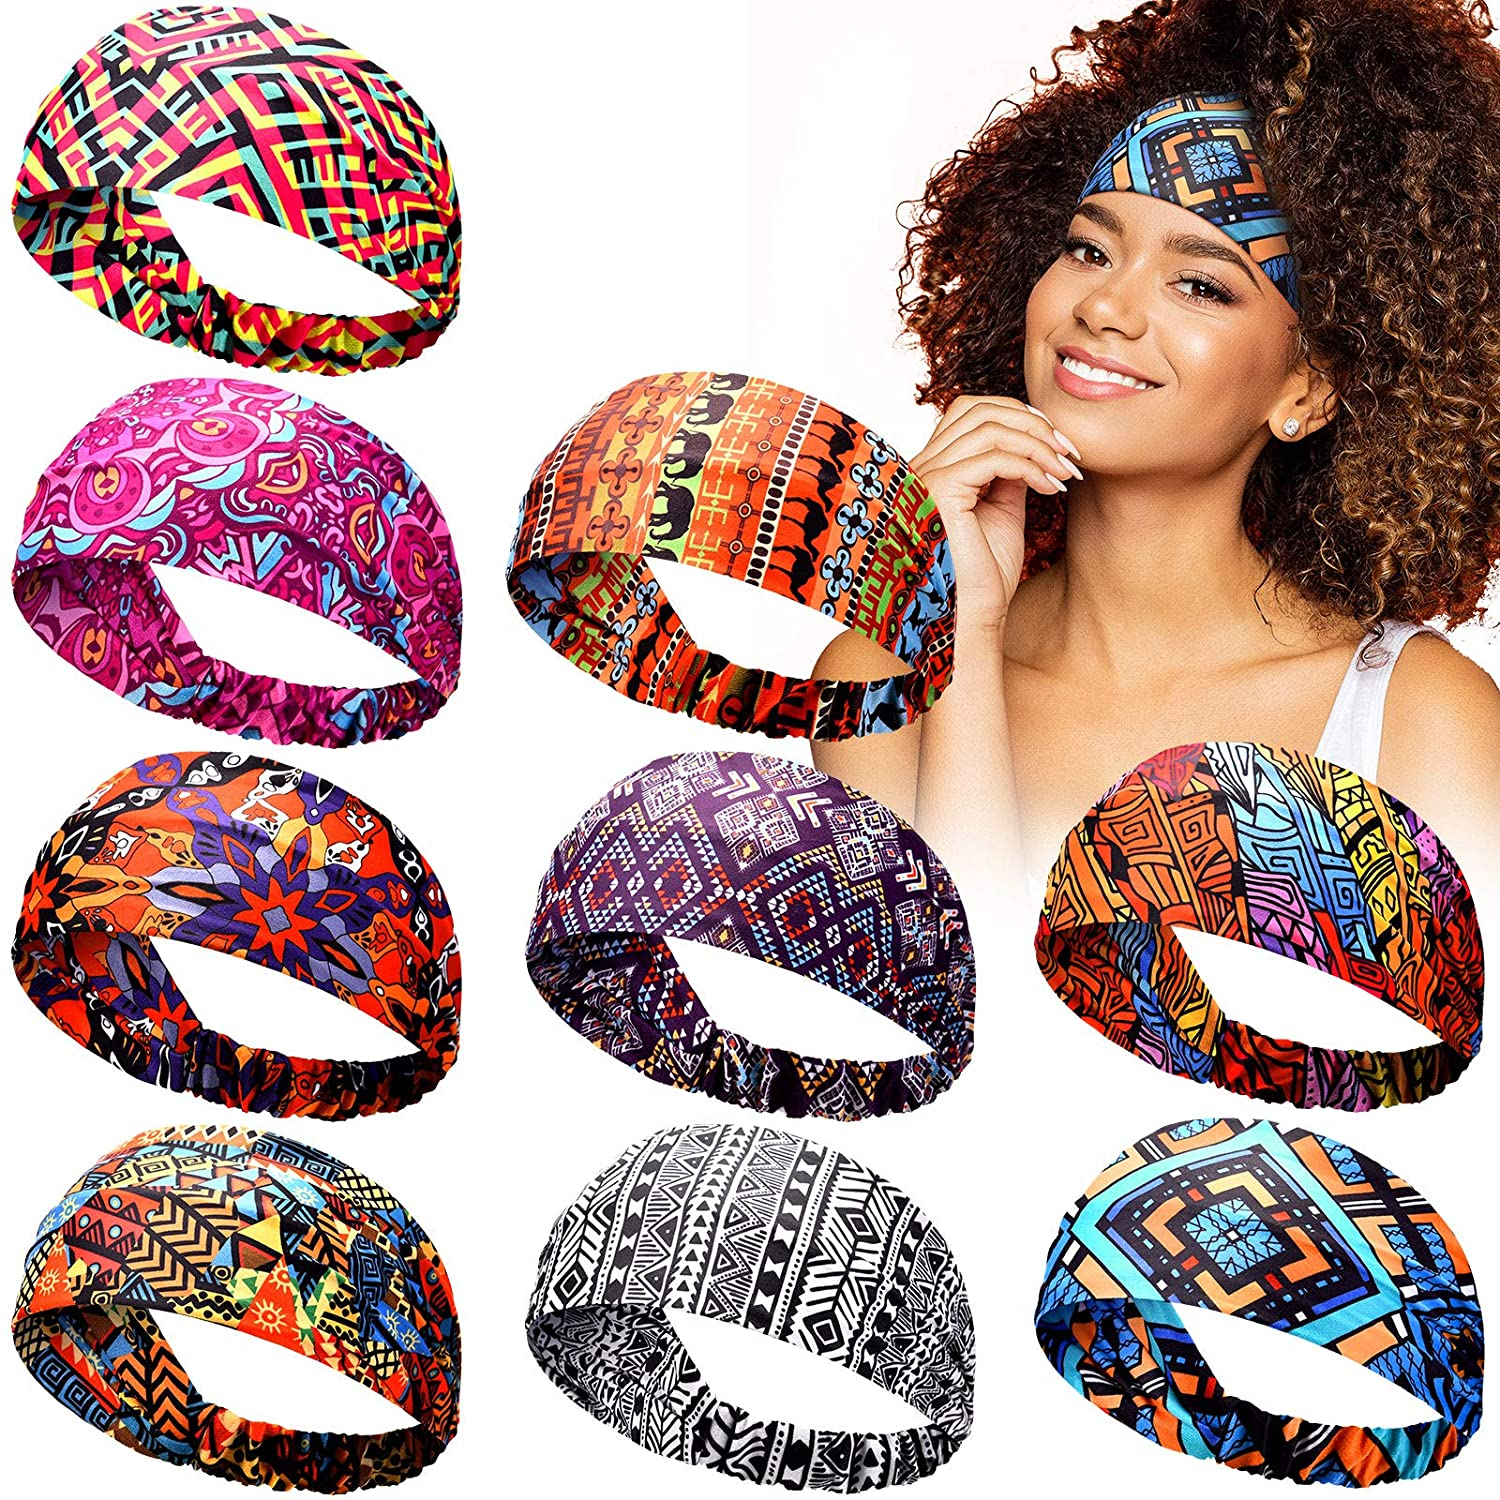 9 Pieces African Headbands Knotted Wide Hair Cheap SALE Start Hairbands Afr Bands Now free shipping